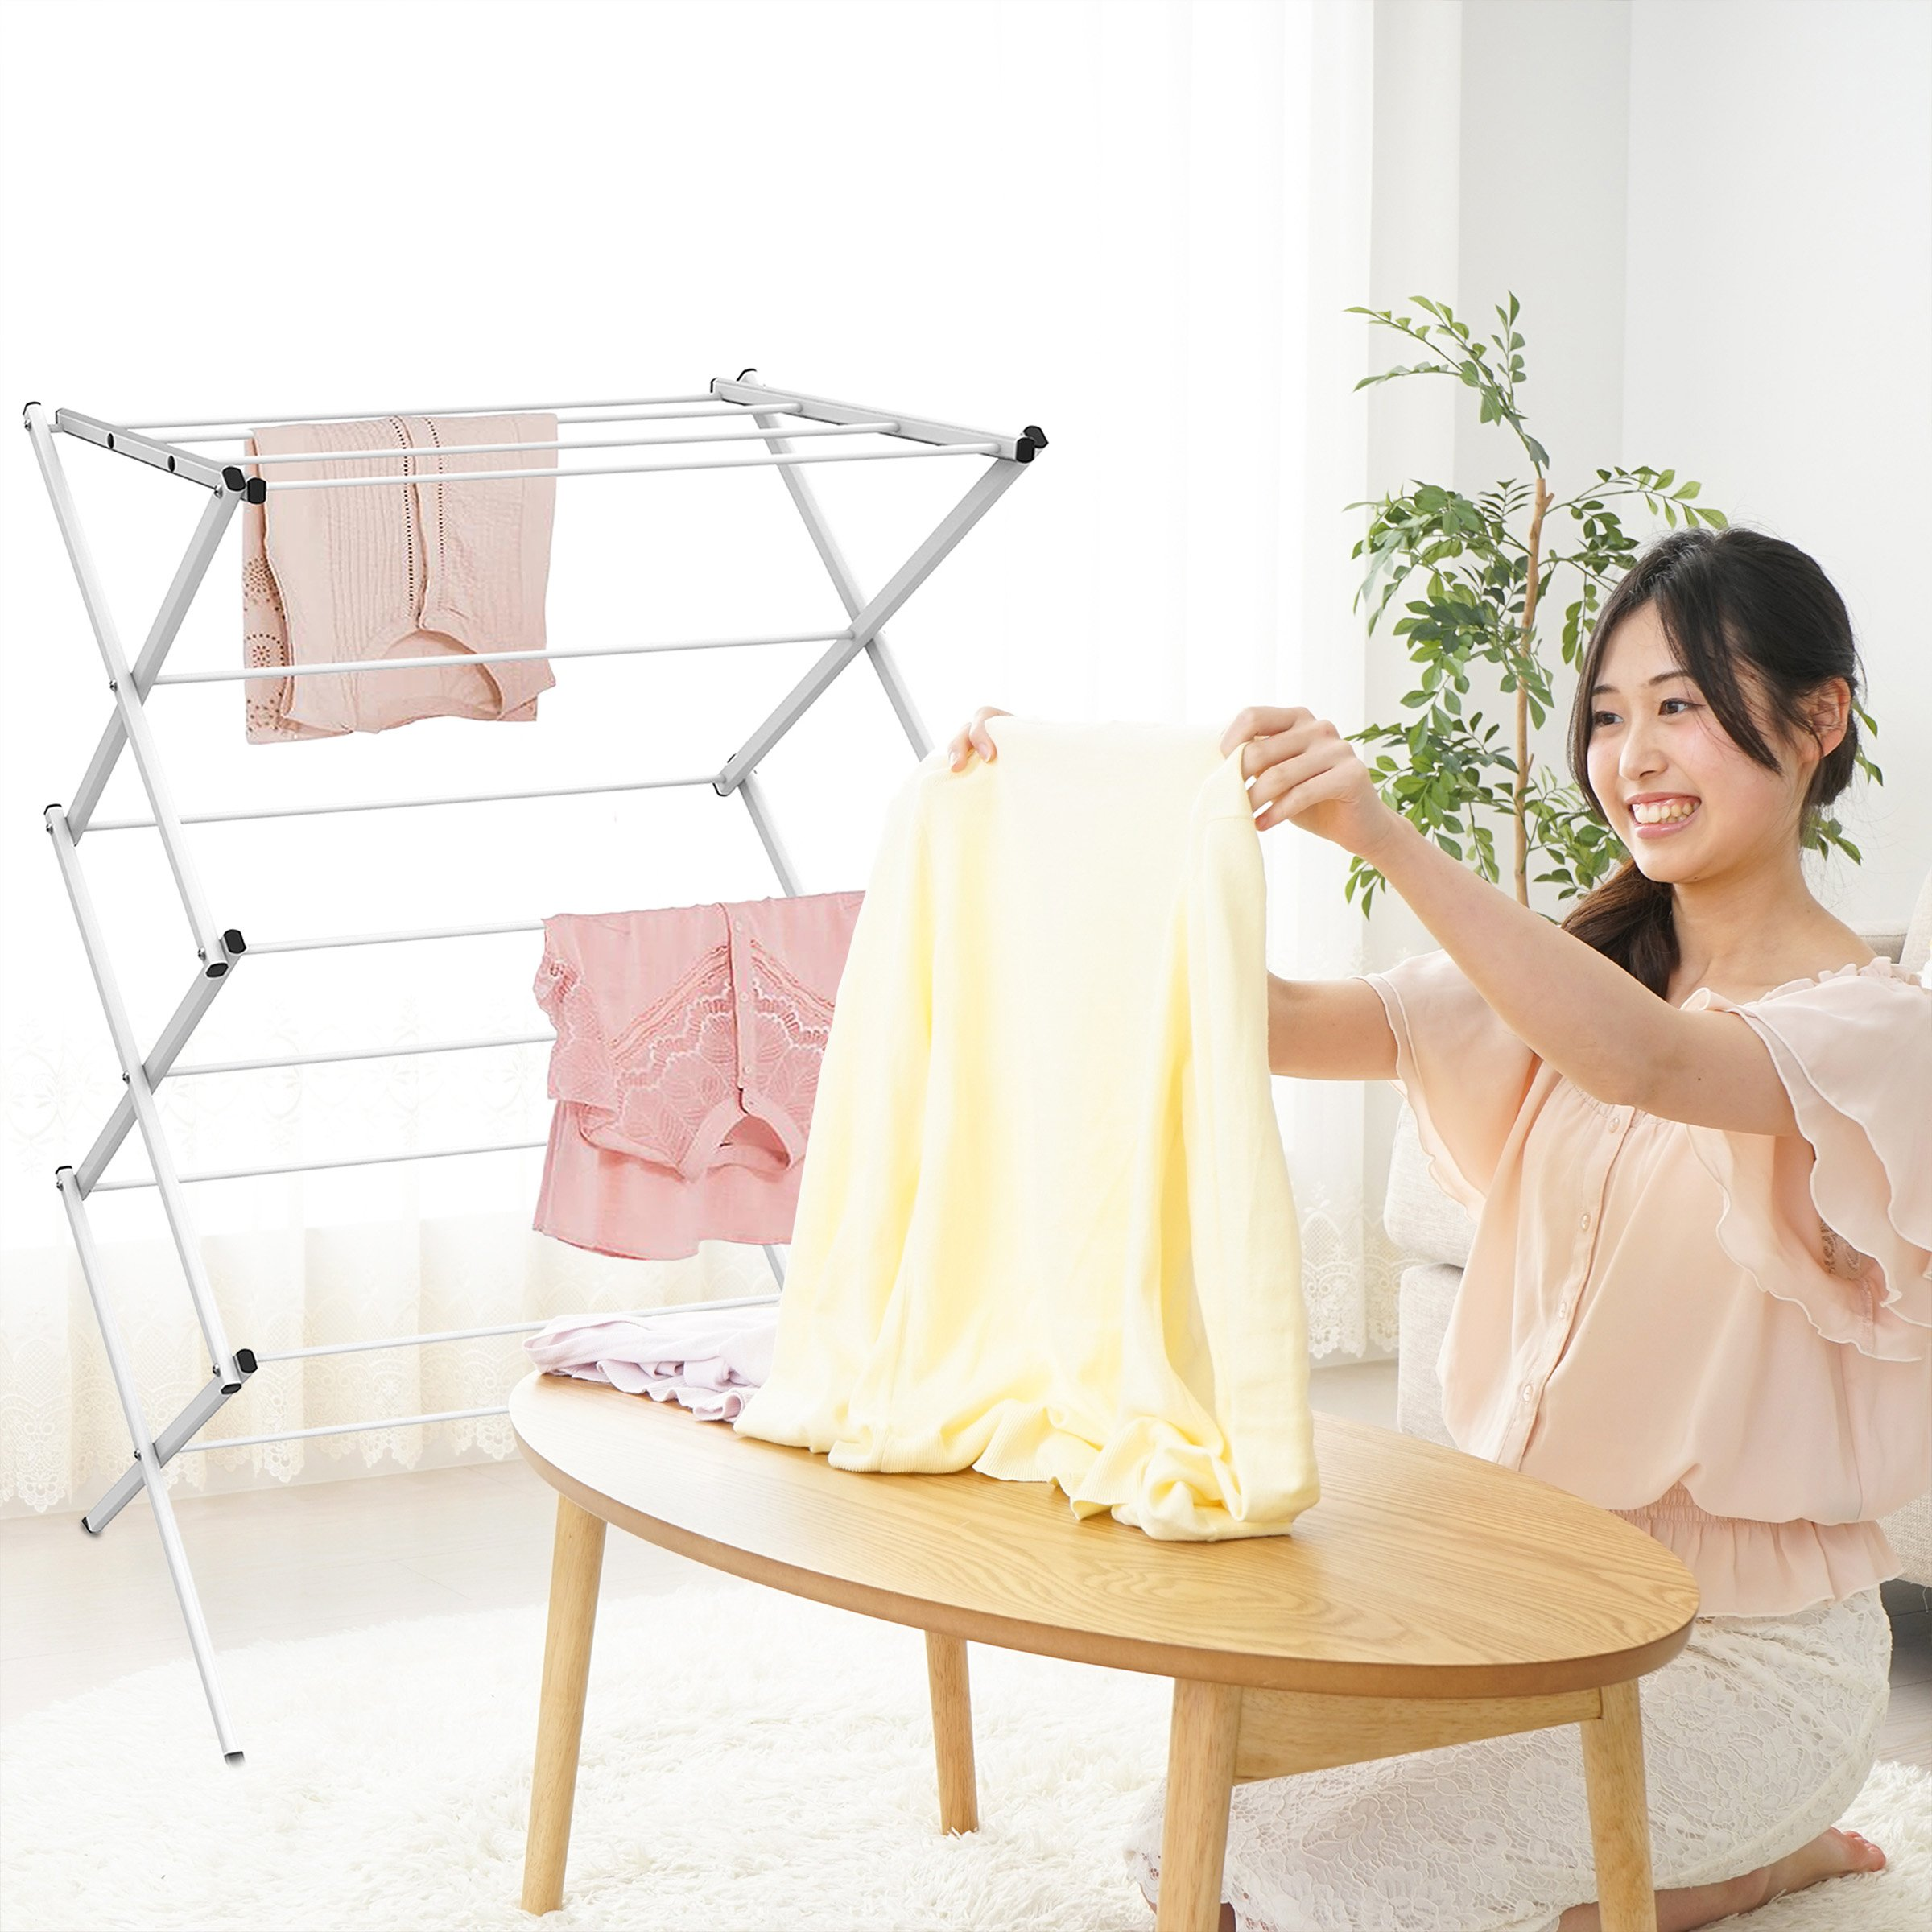 Lavish Home Clothes Drying Rack-24ft. of Drying Space-Collapsible and Compact for Indoor/Outdoor Use-Portable Stand for Hanging, Air-Drying Laundry by Lavish Home (Image #5)